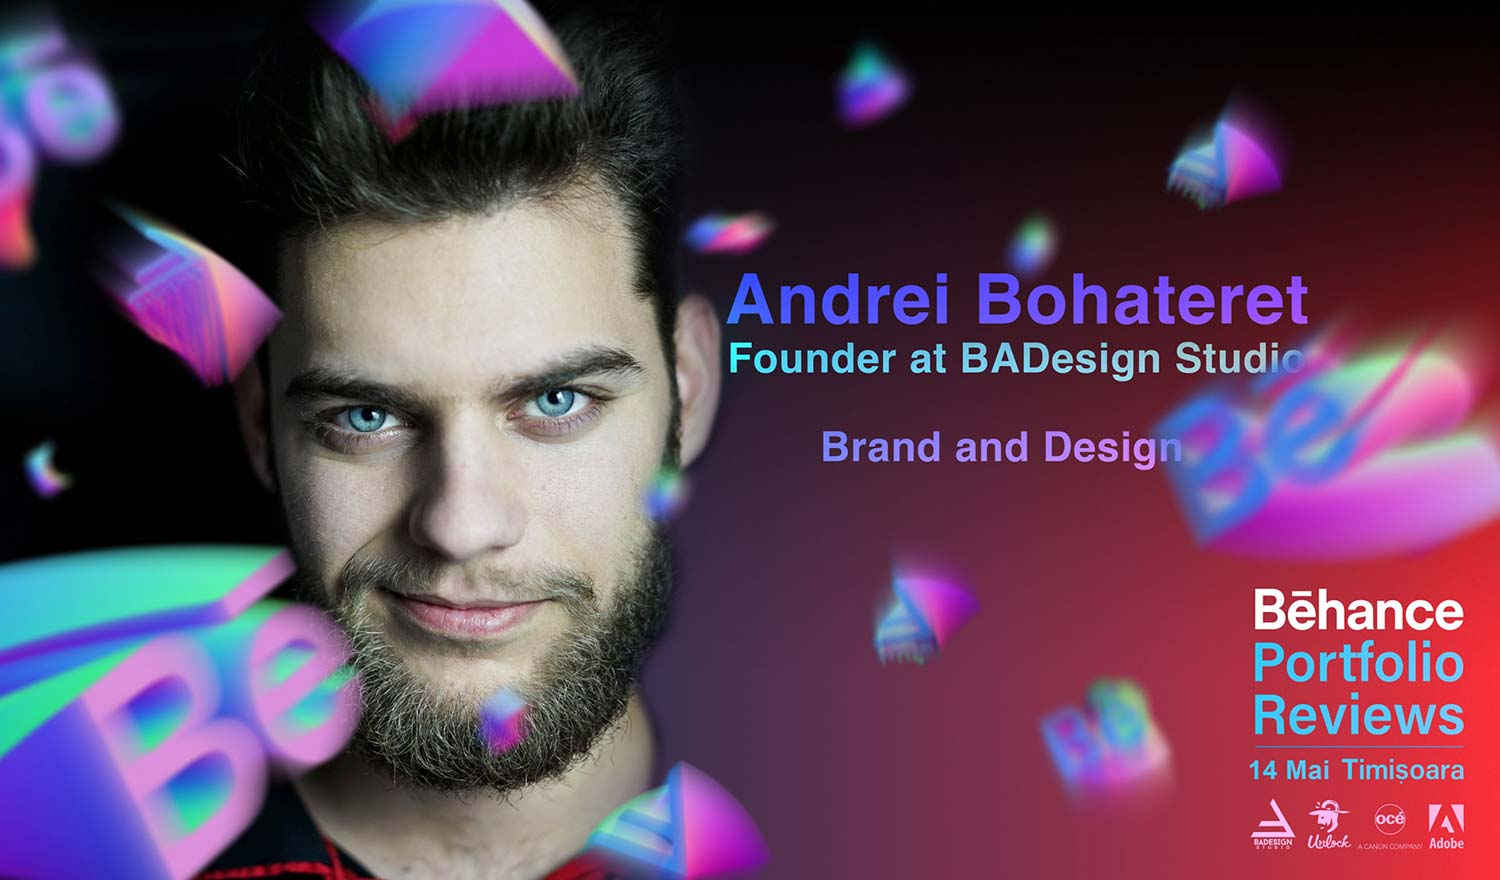 Behance Andrei Bohateret BADESIGN